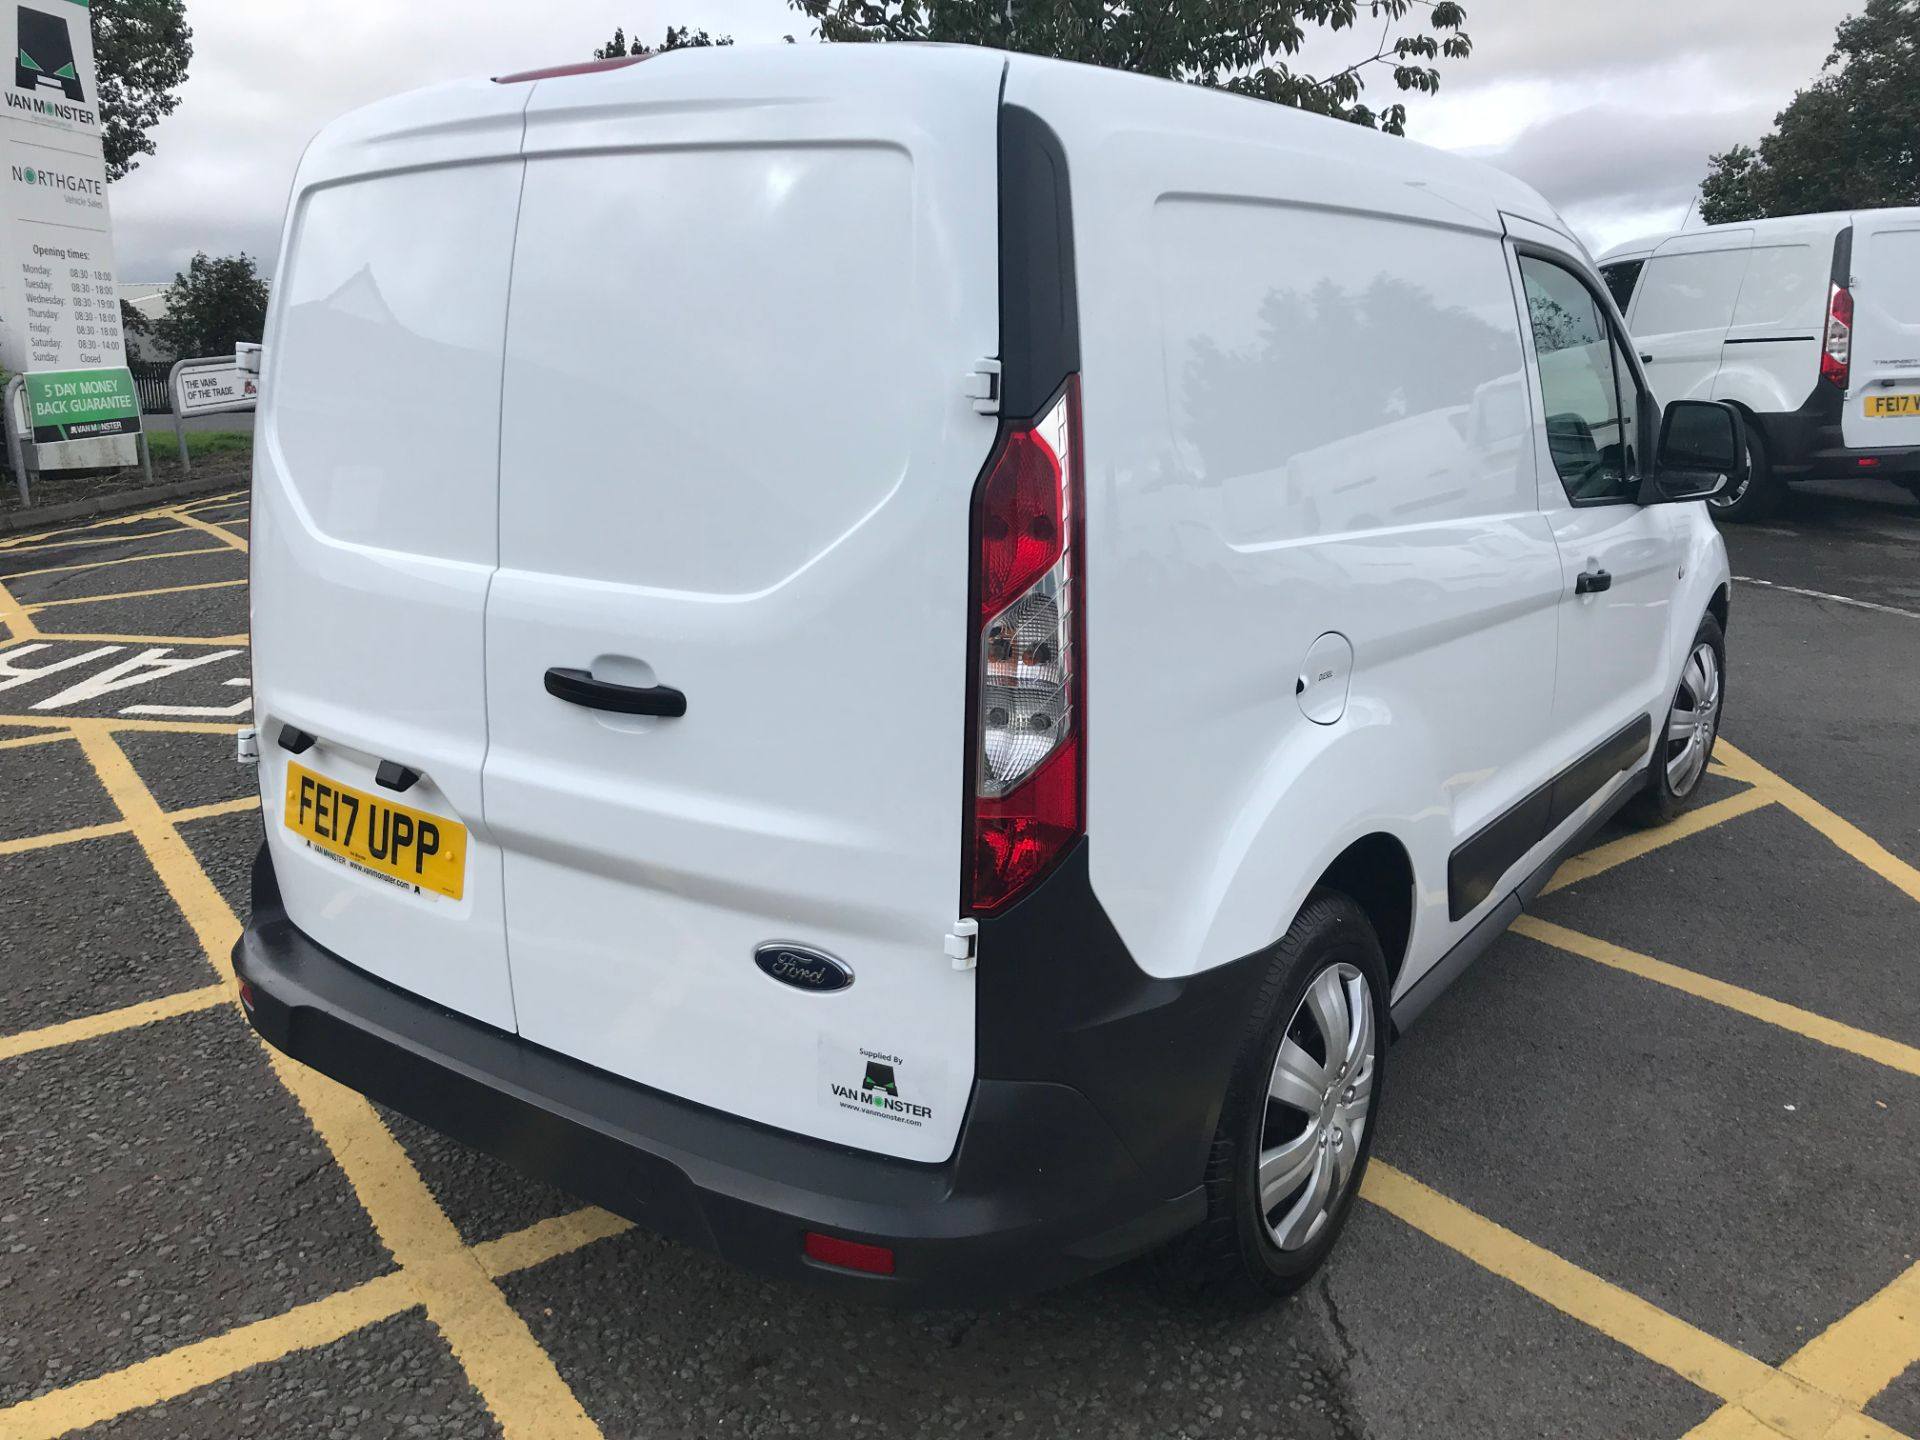 2017 Ford Transit Connect 1.5 Tdci 75Ps Van (FE17UPP) Image 7